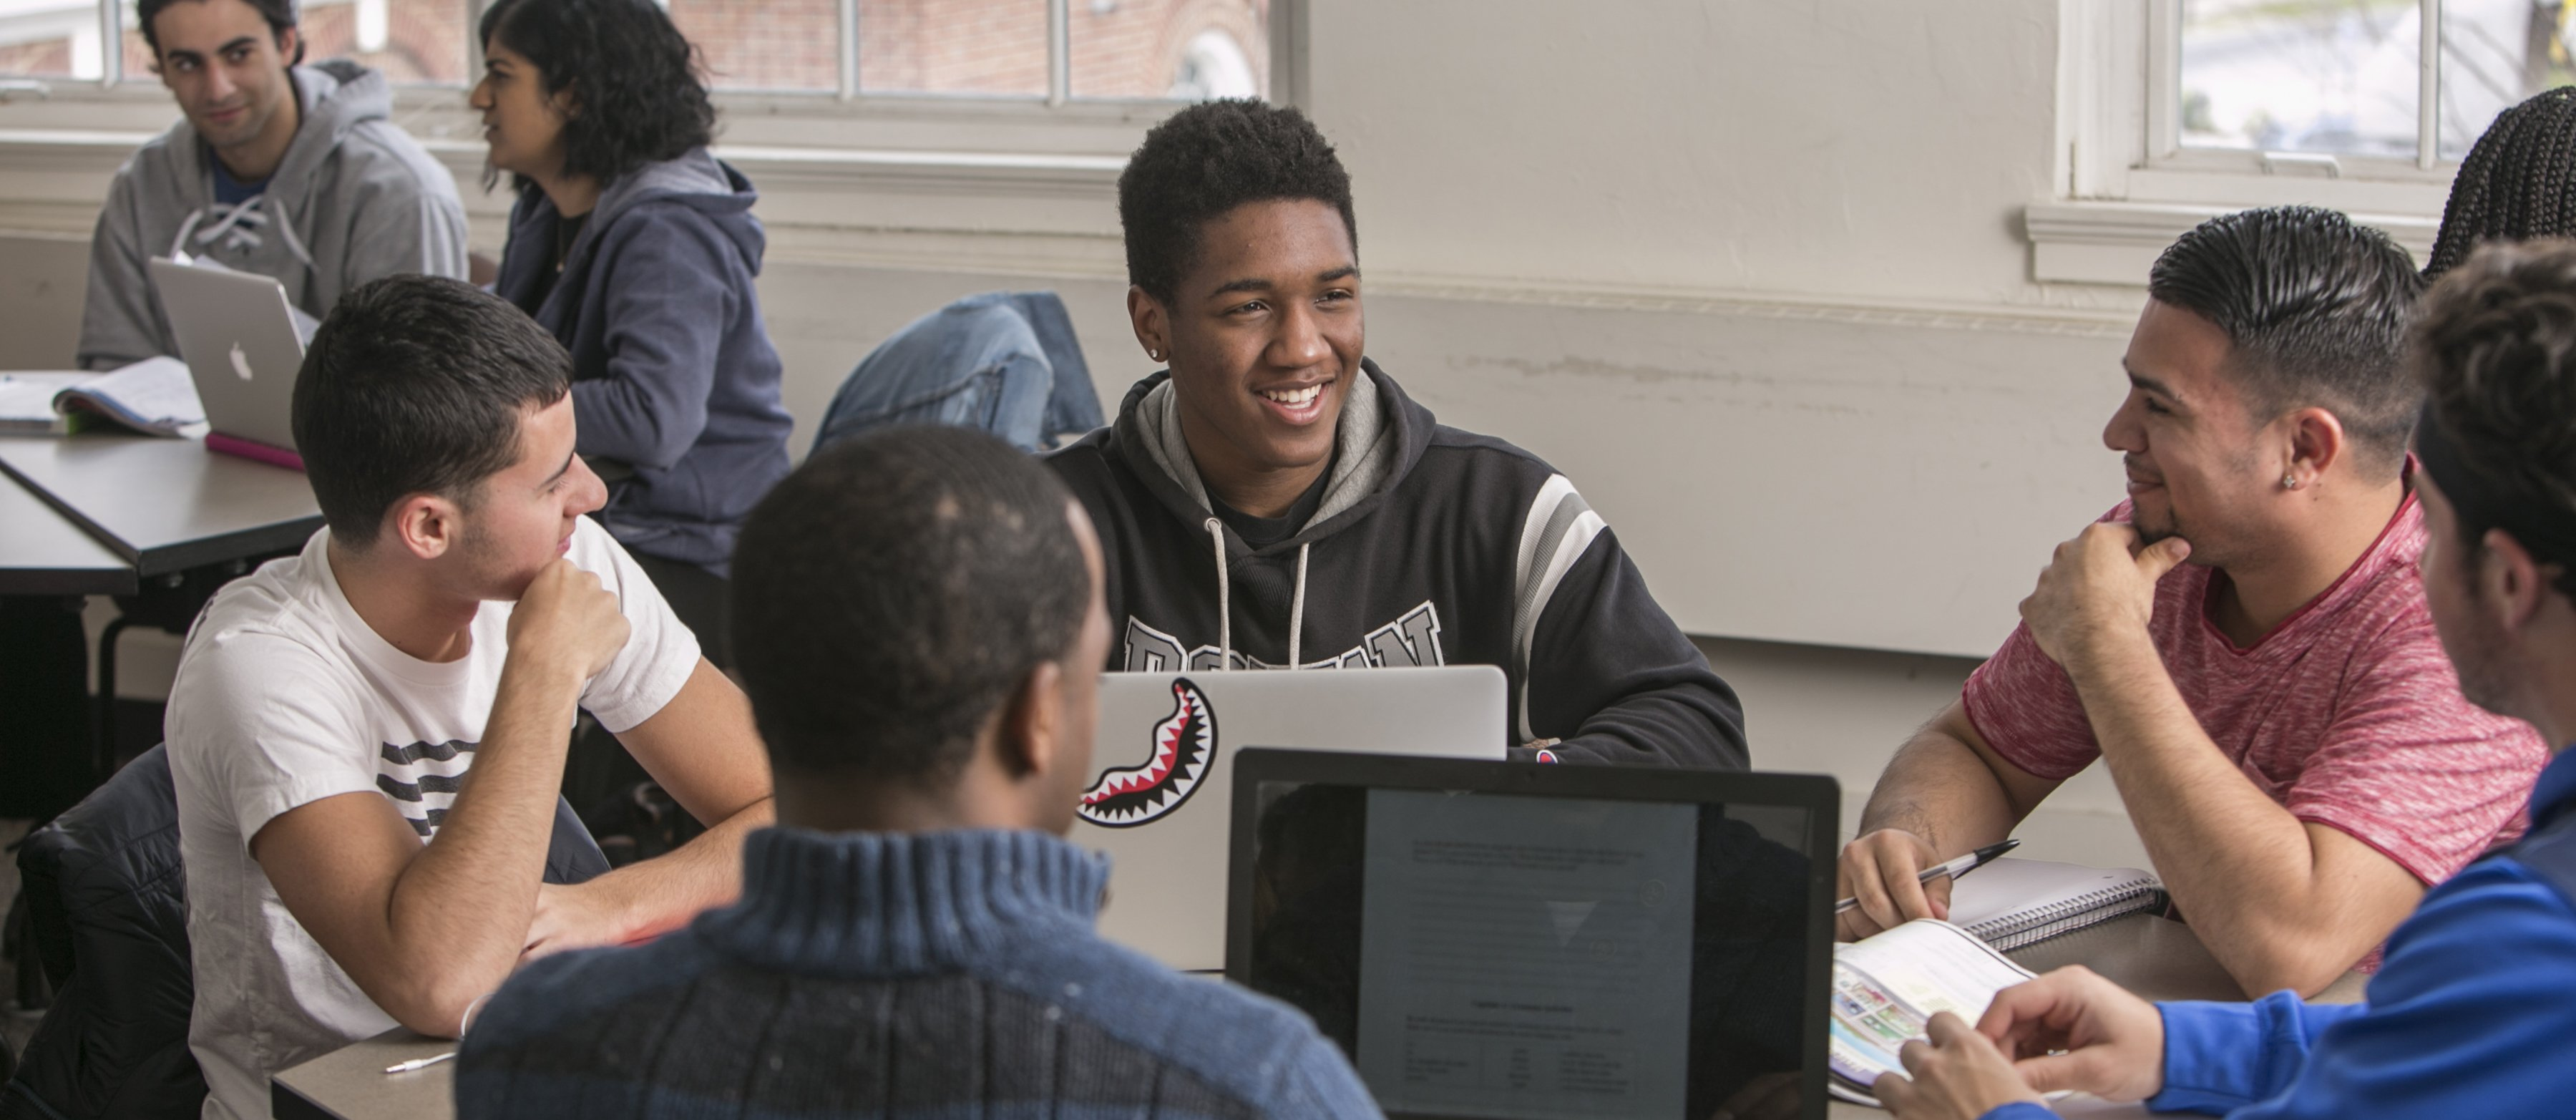 students on laptops